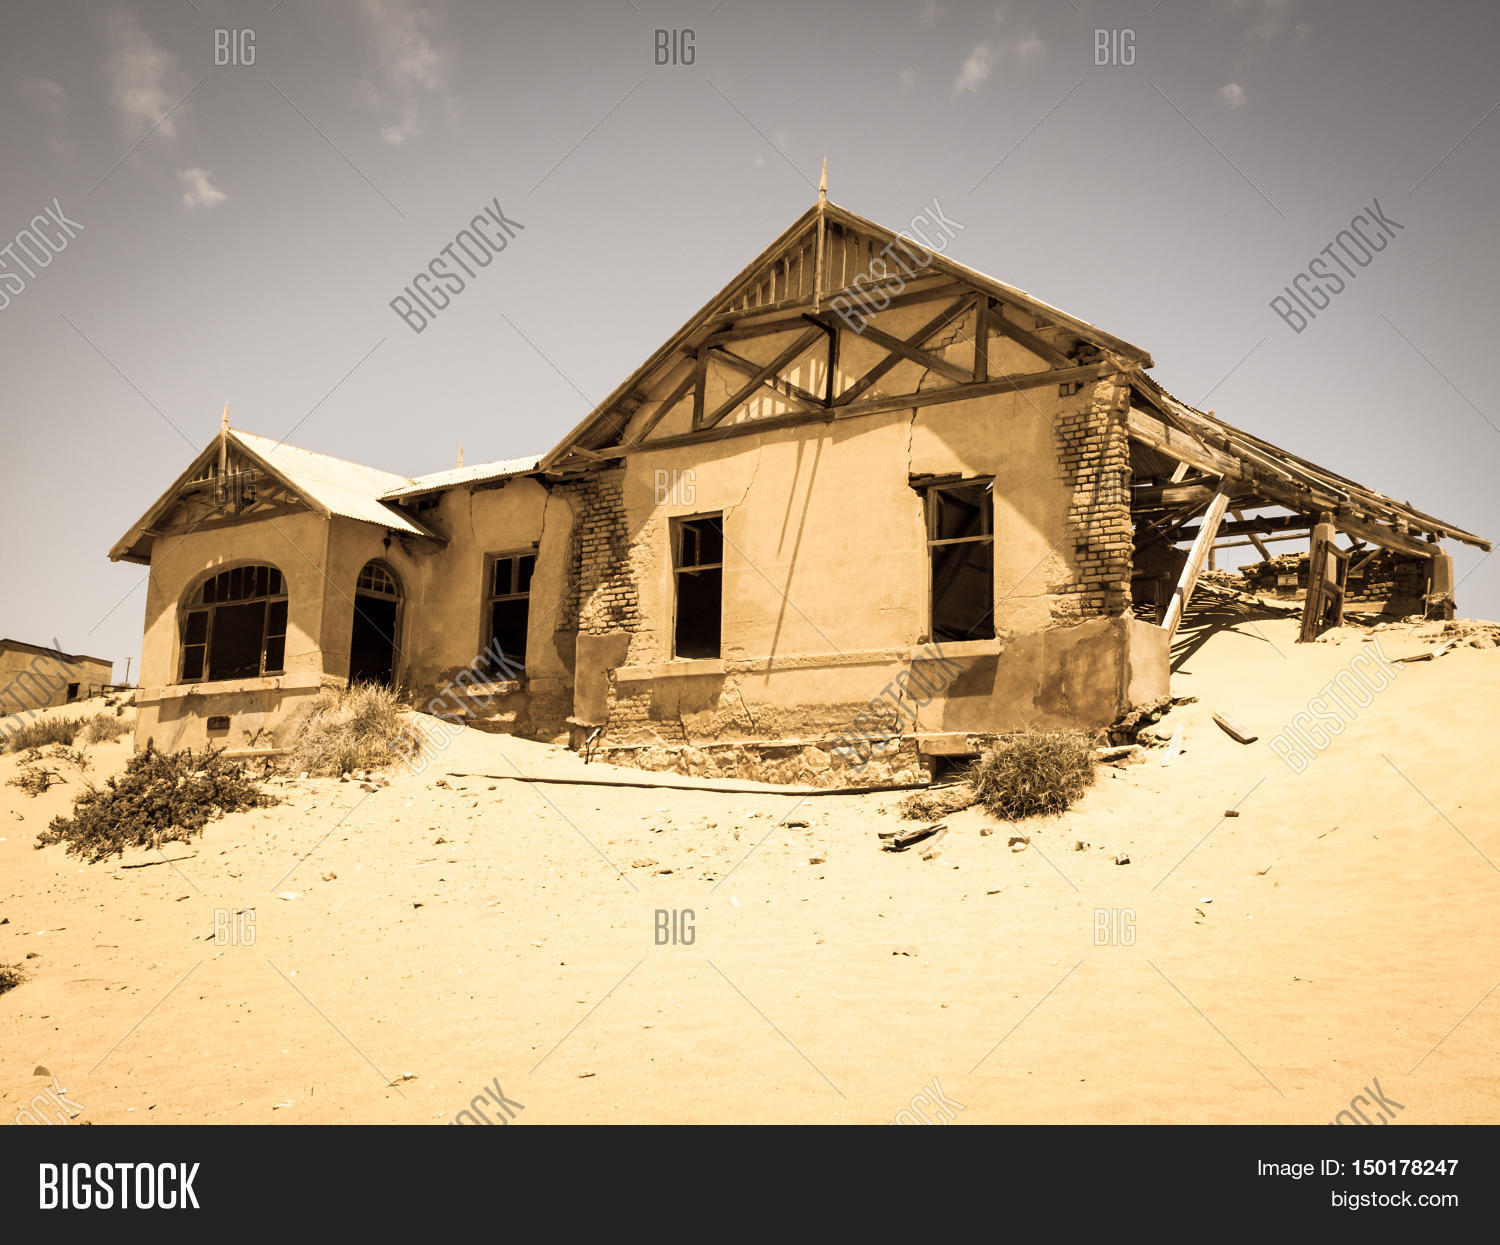 Ghost Buildings Old Image & Photo (Free Trial) | Bigstock